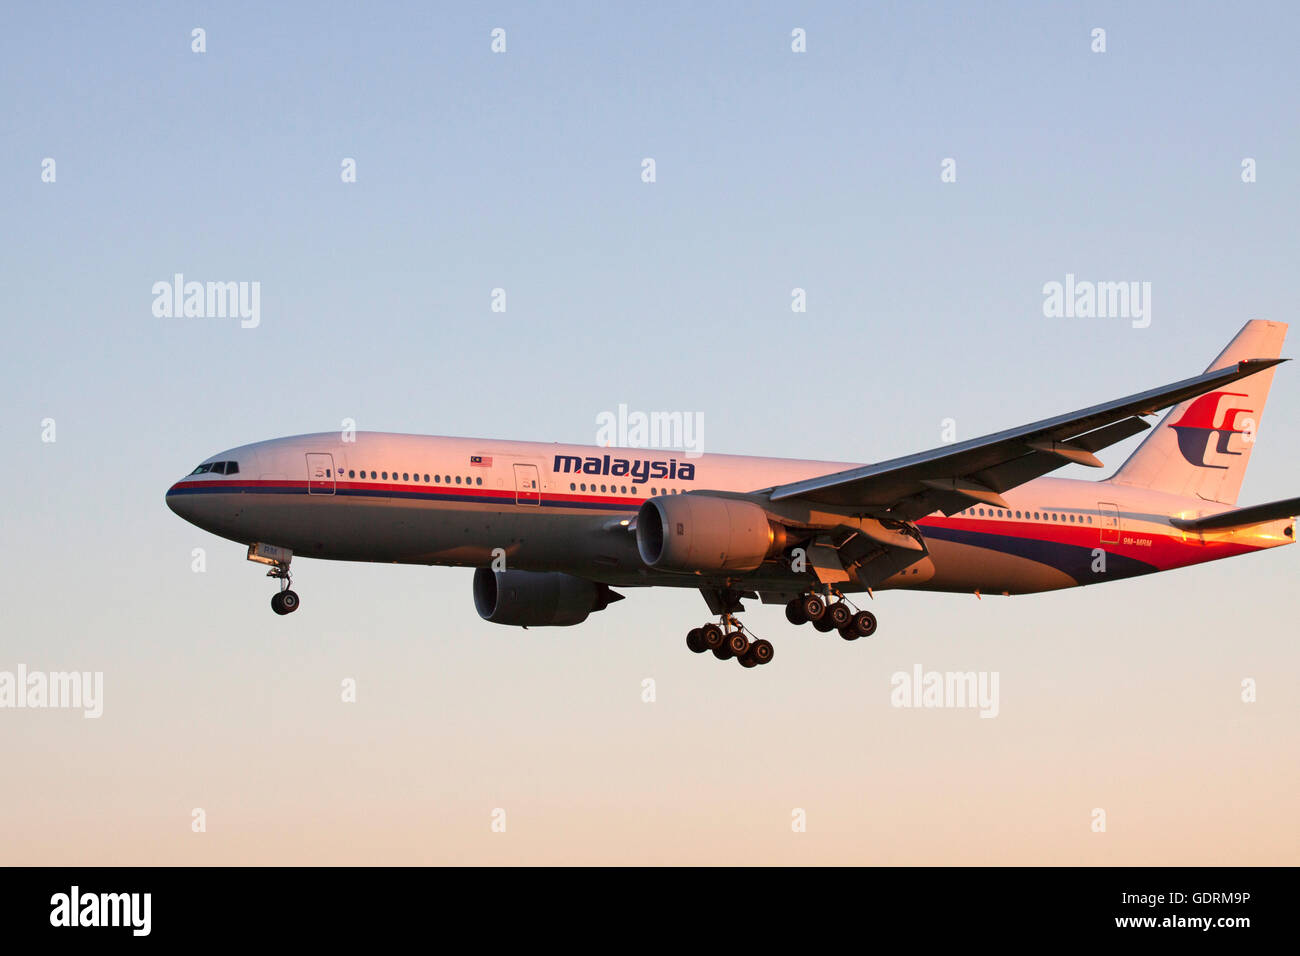 AMSTERDAM, THE NETHERLANDS - SEPTEMBER 30, 2015  Boeing 777 from malaysia airlines will land on the runway shining - Stock Image